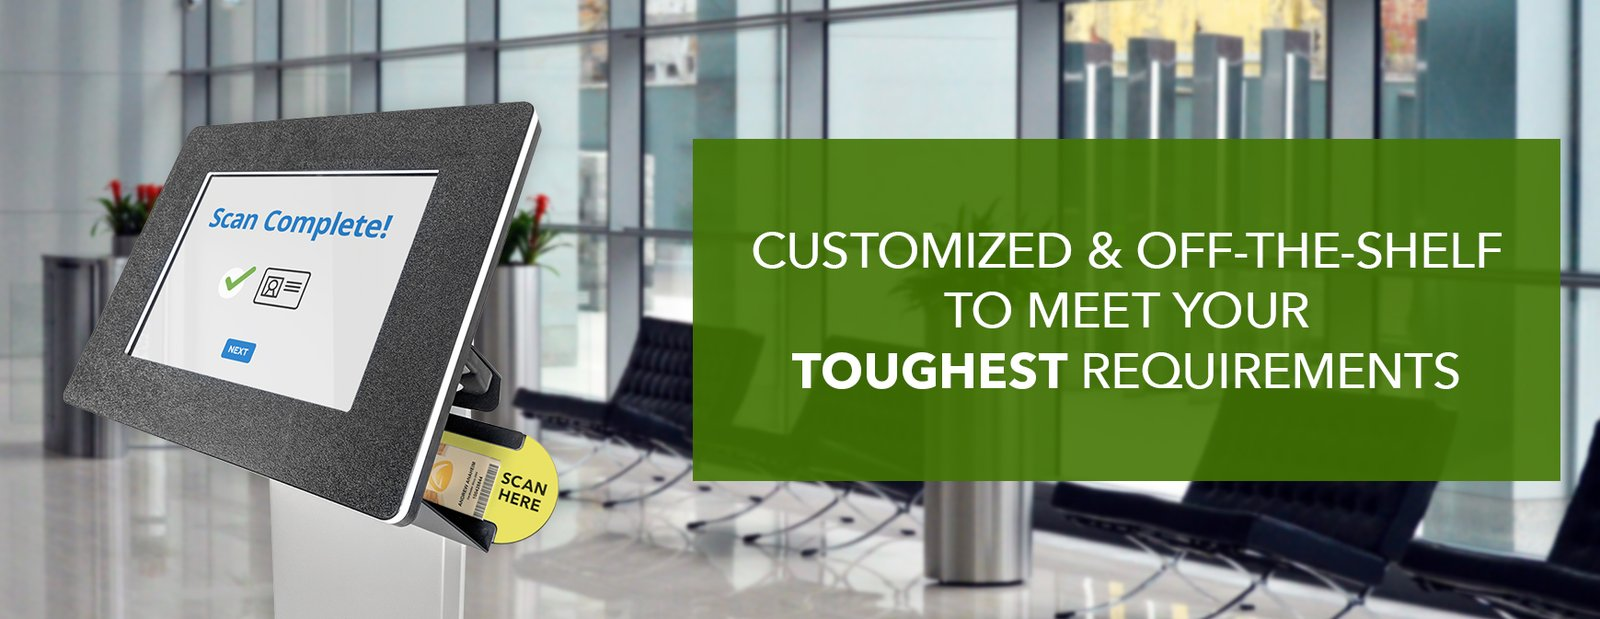 Our kiosks are designed to meet your toughest requirements